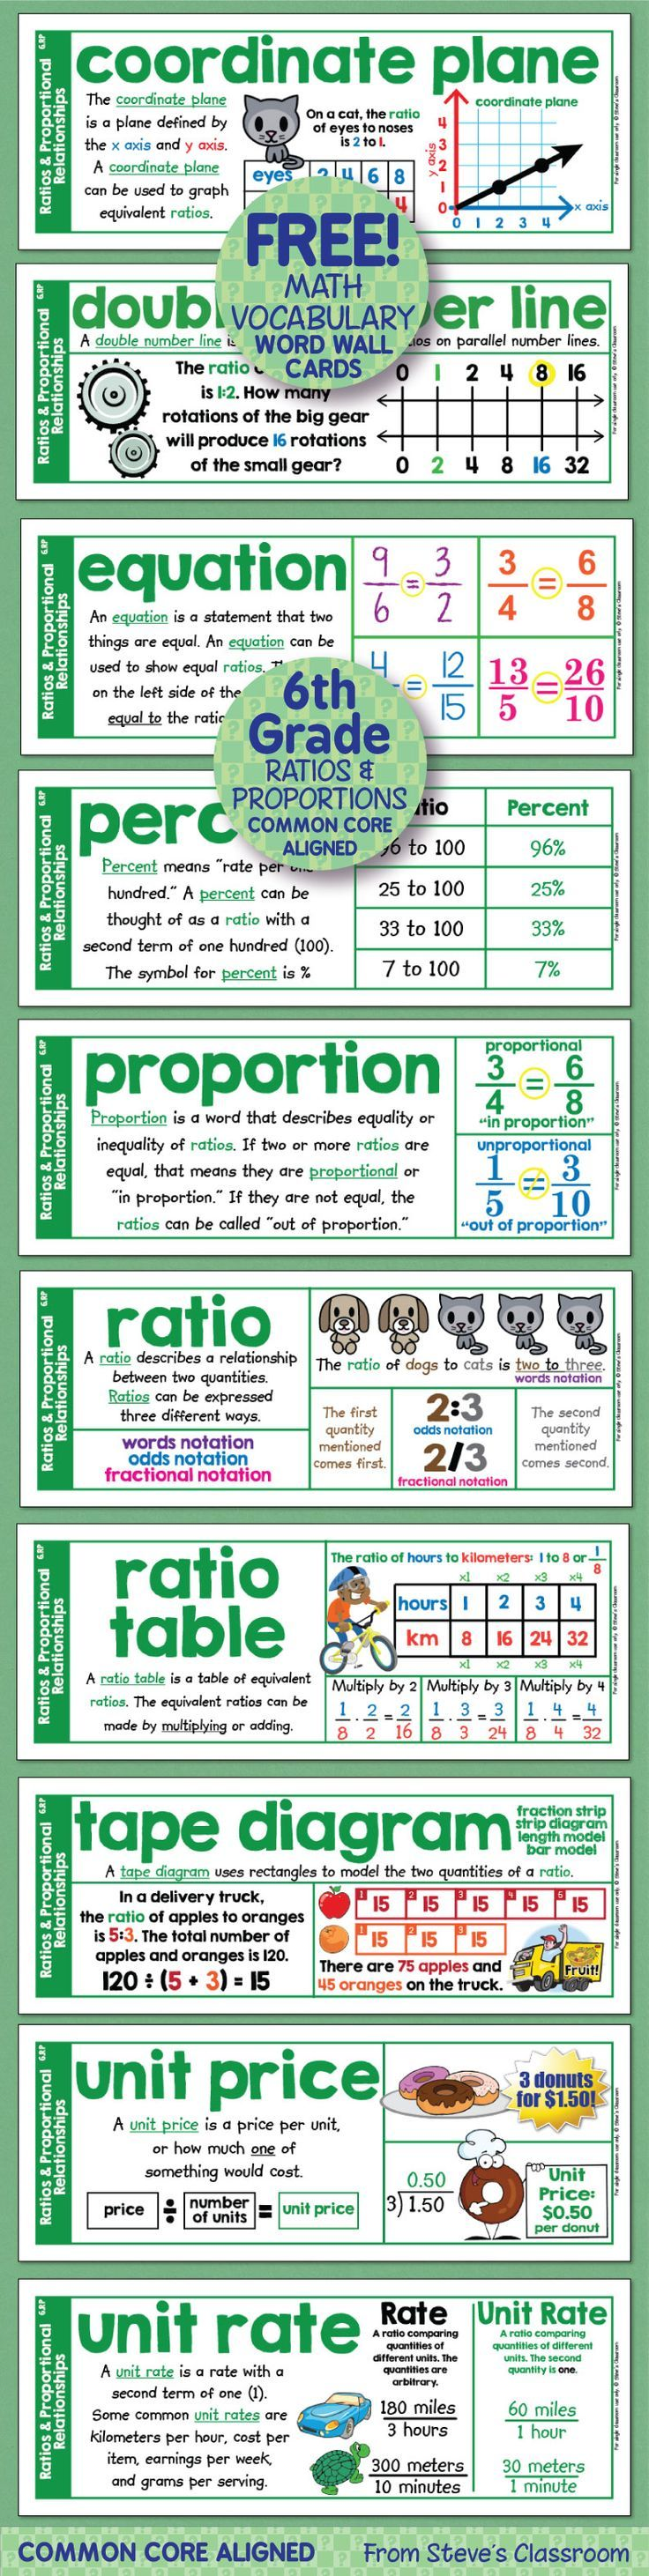 Free! Word wall cards for sixth grade math ratios and proportional relationships!: